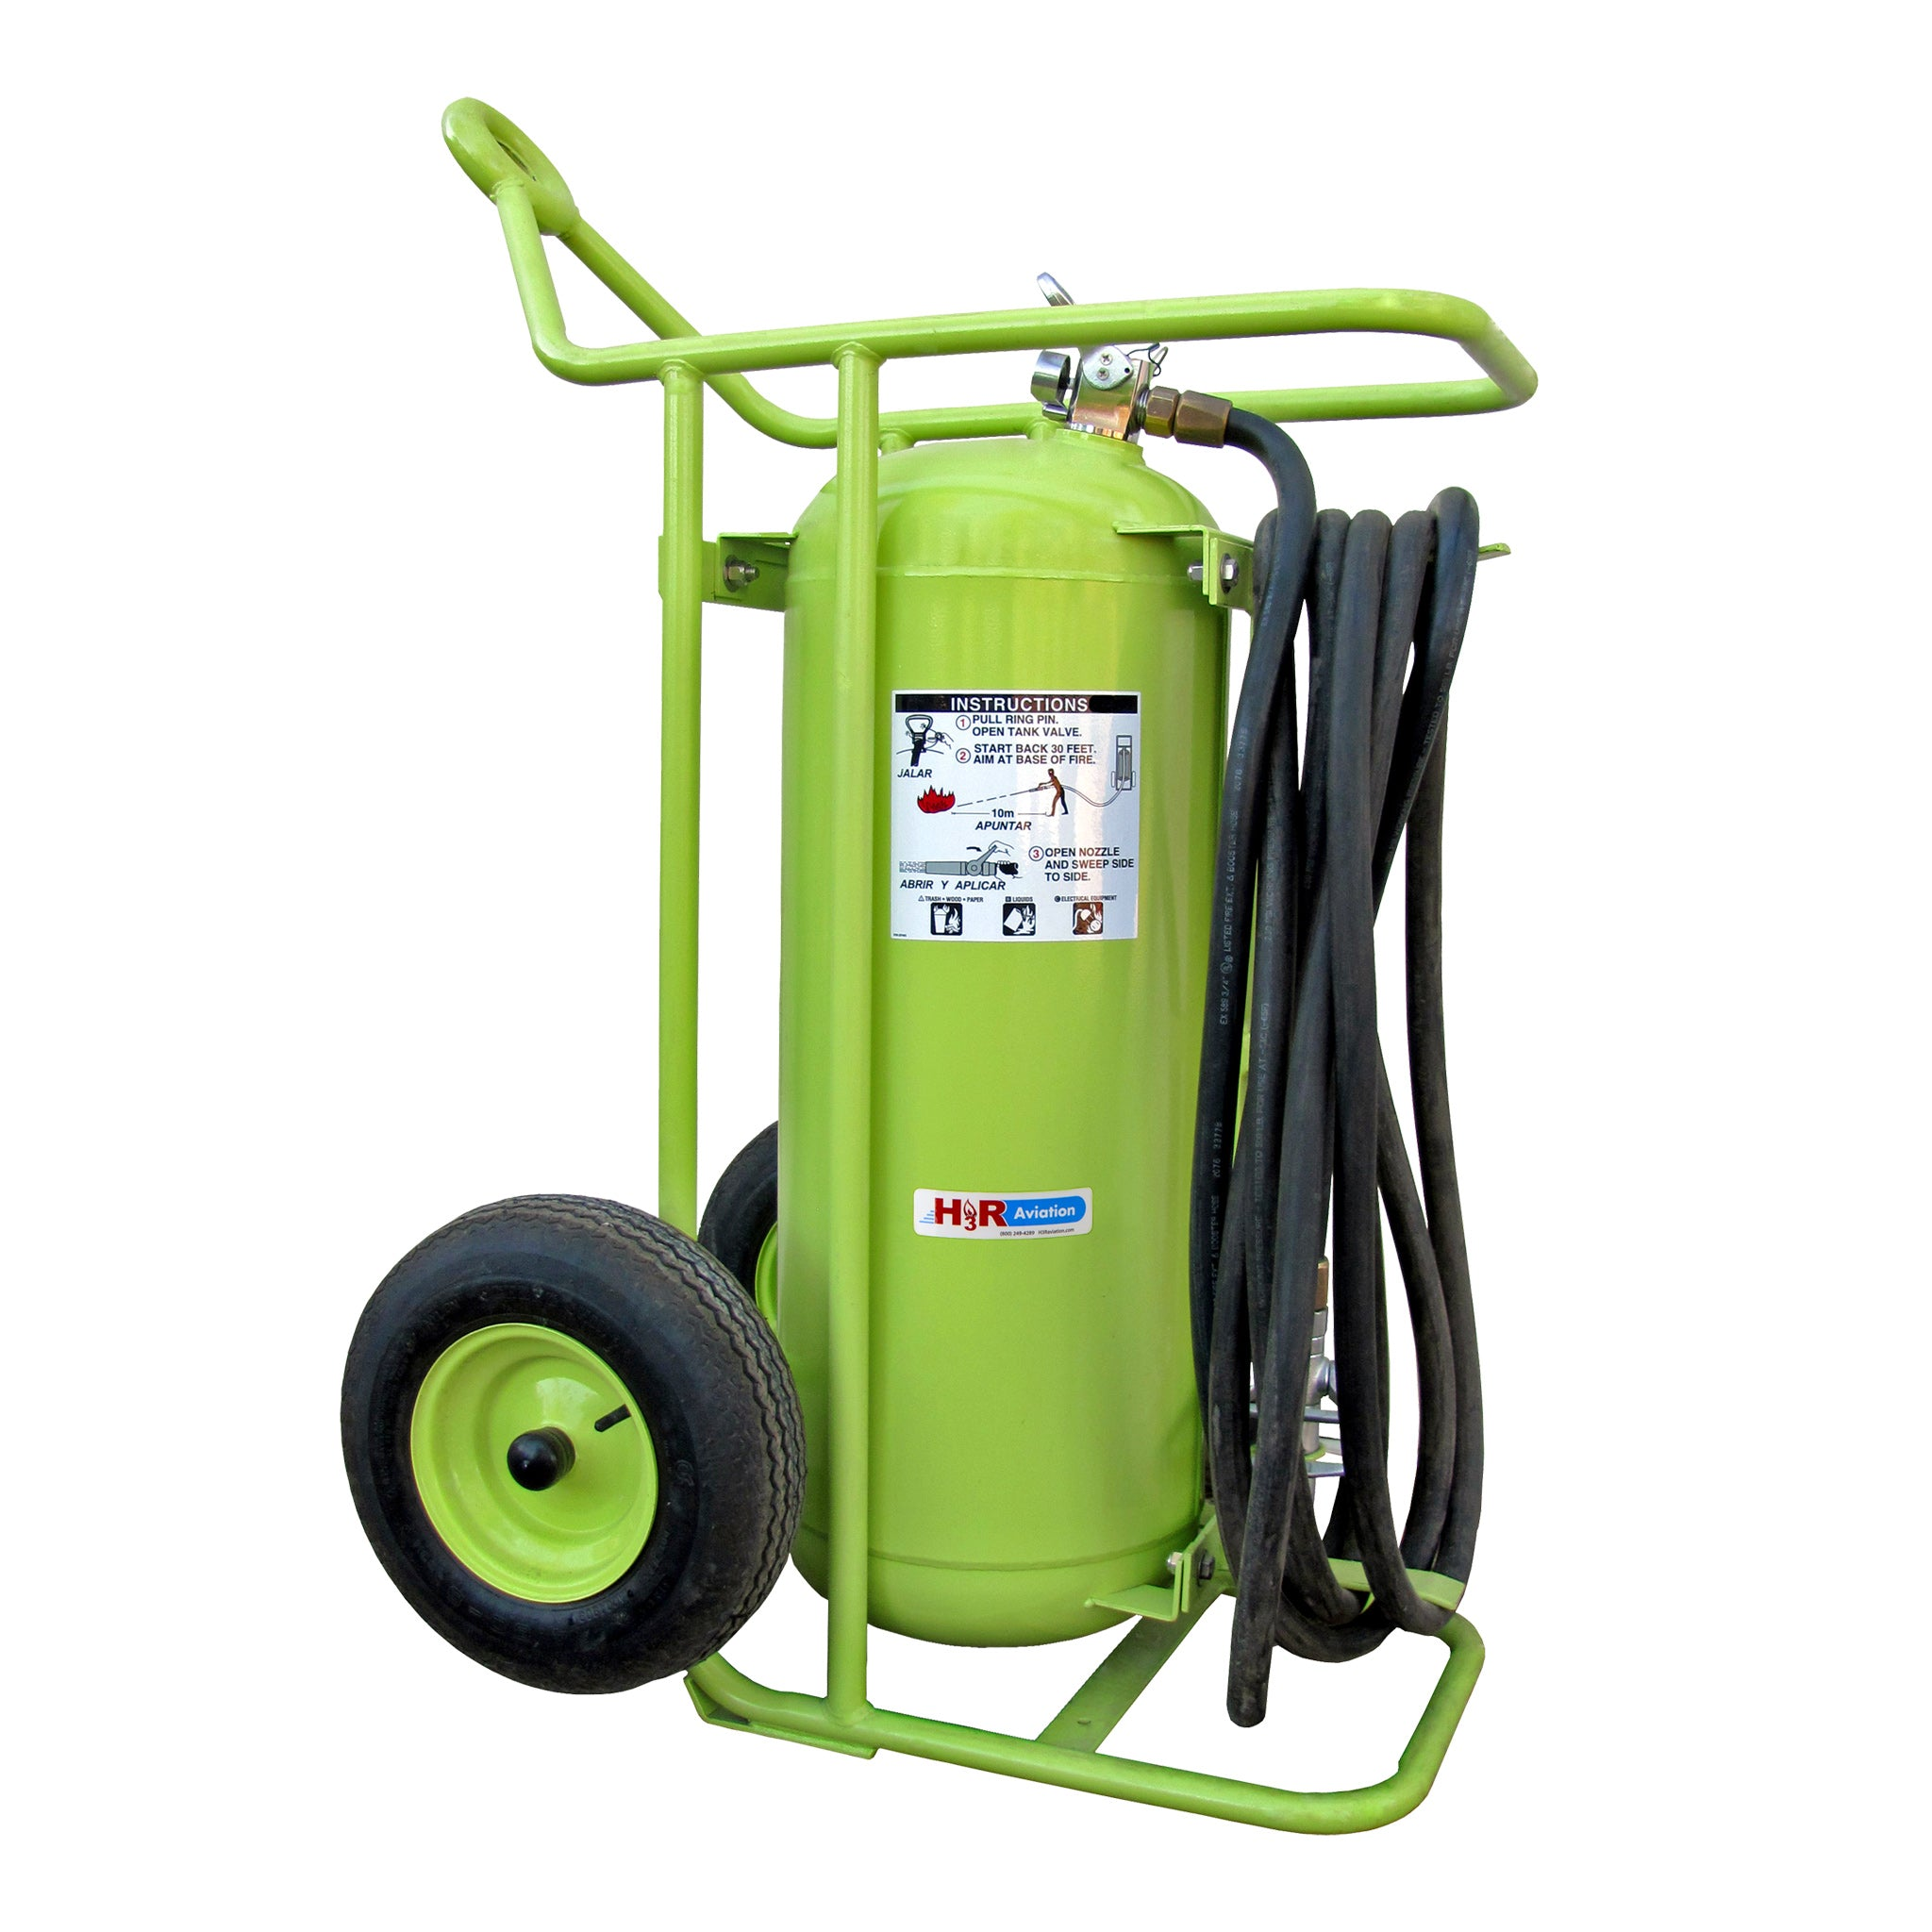 MODEL 775 - 150 lb. Wheeled Novec 1230 Fire Extinguisher